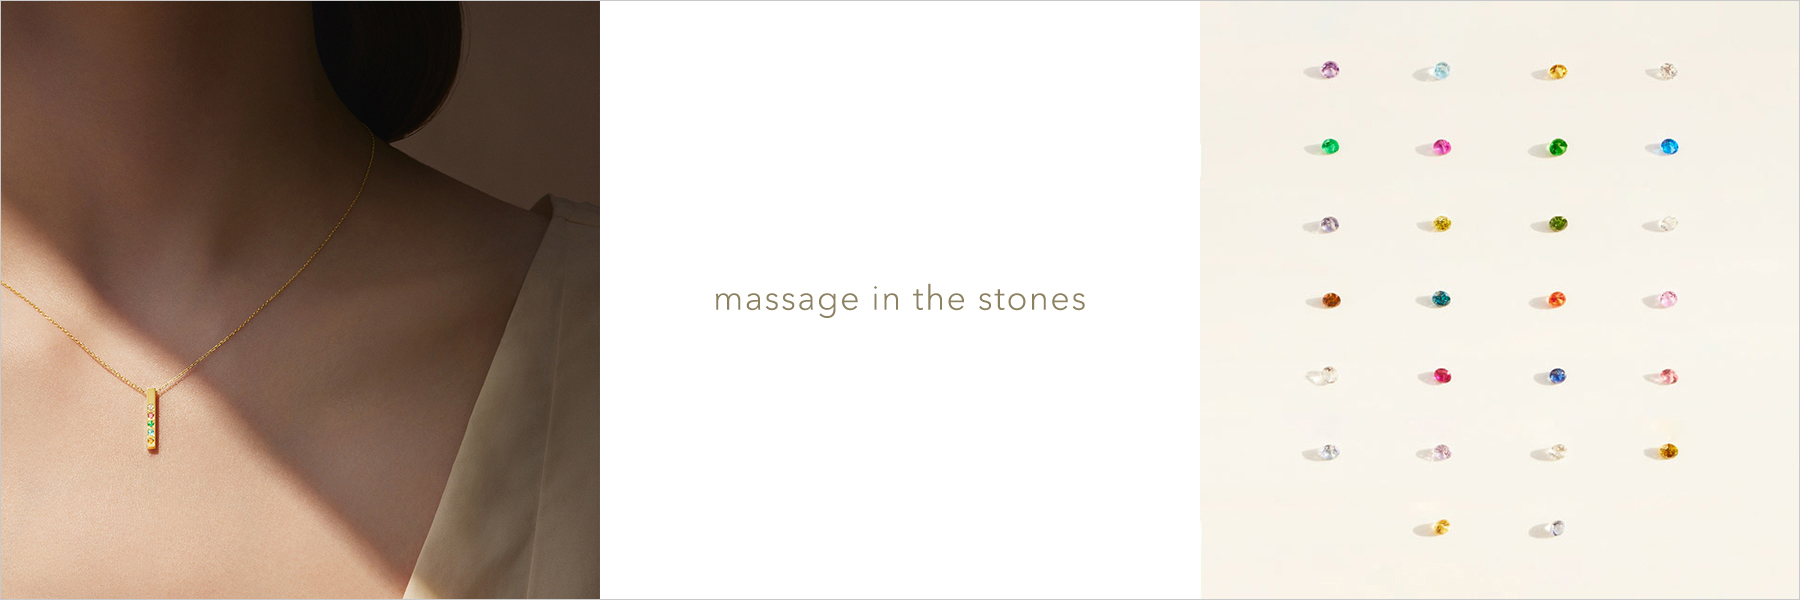 massage in the stones